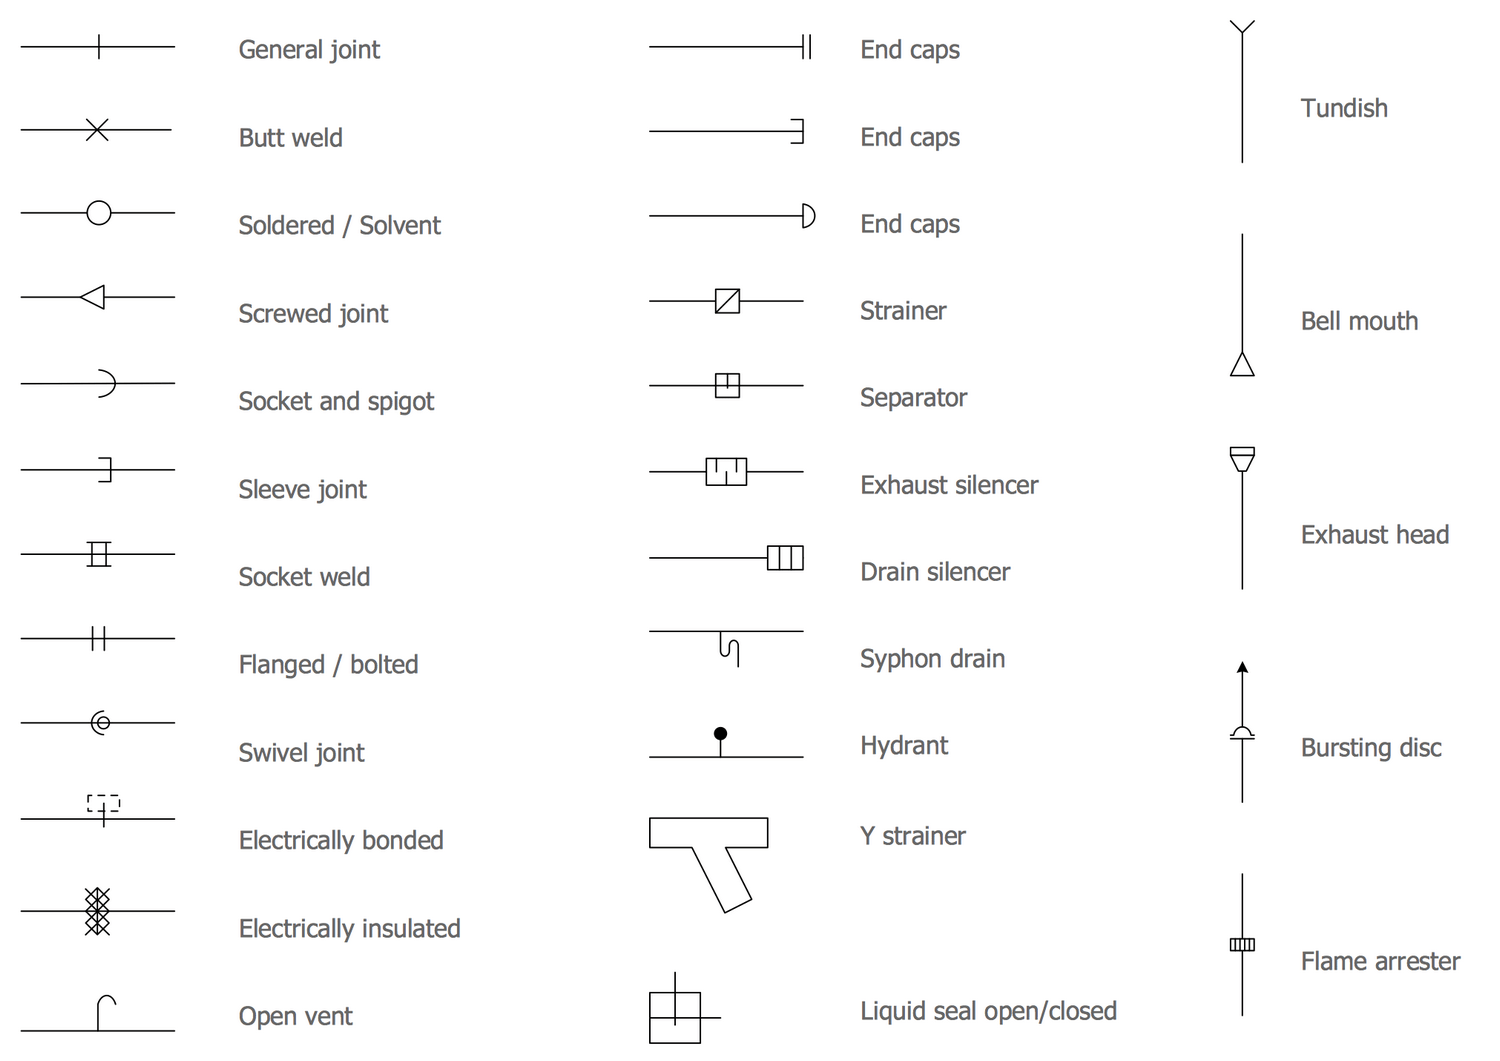 pump pipe schematic symbols